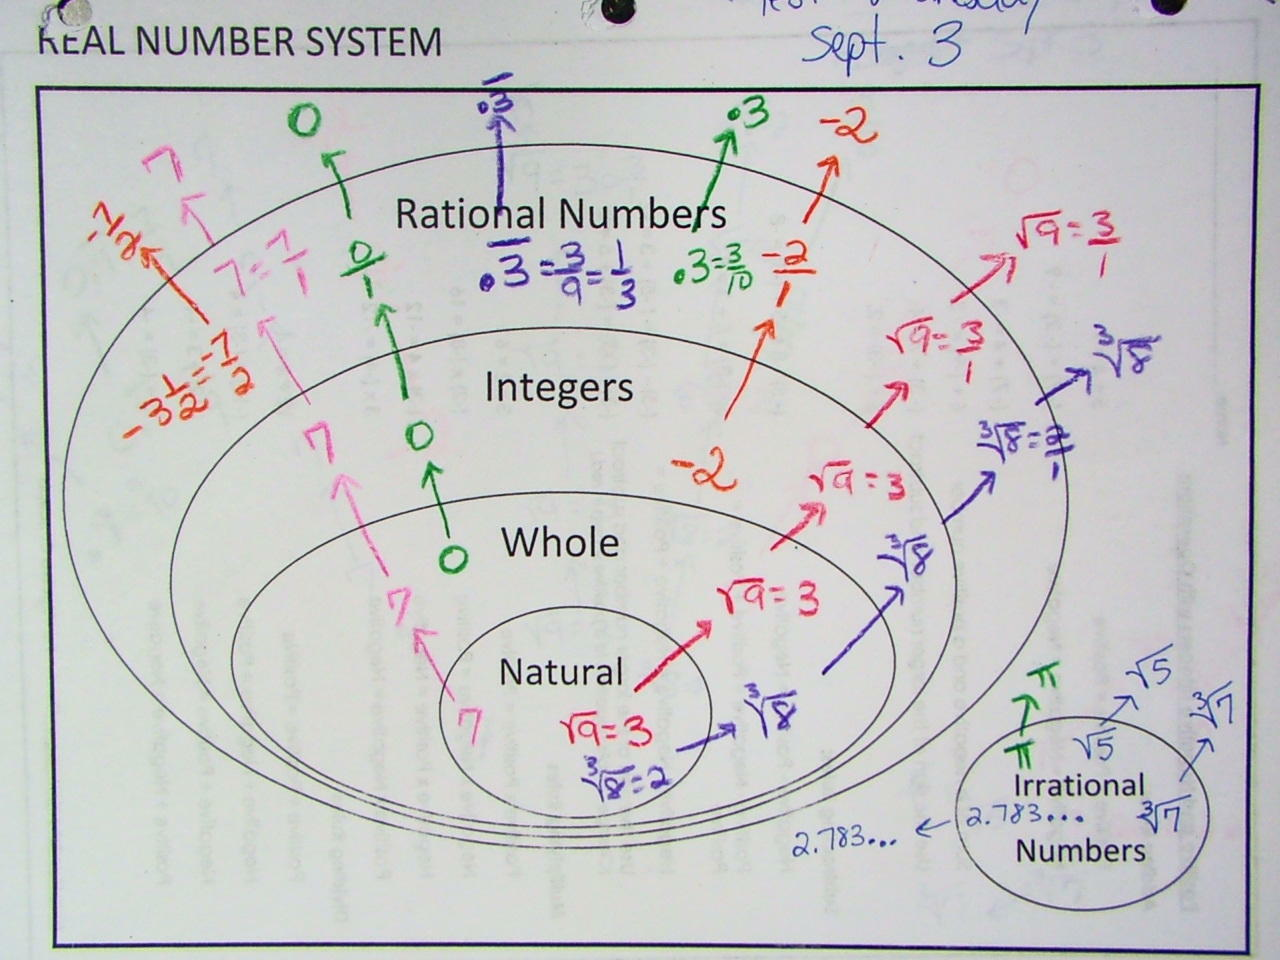 venn diagram for real number system energy pyramid irrational numbers 3 set